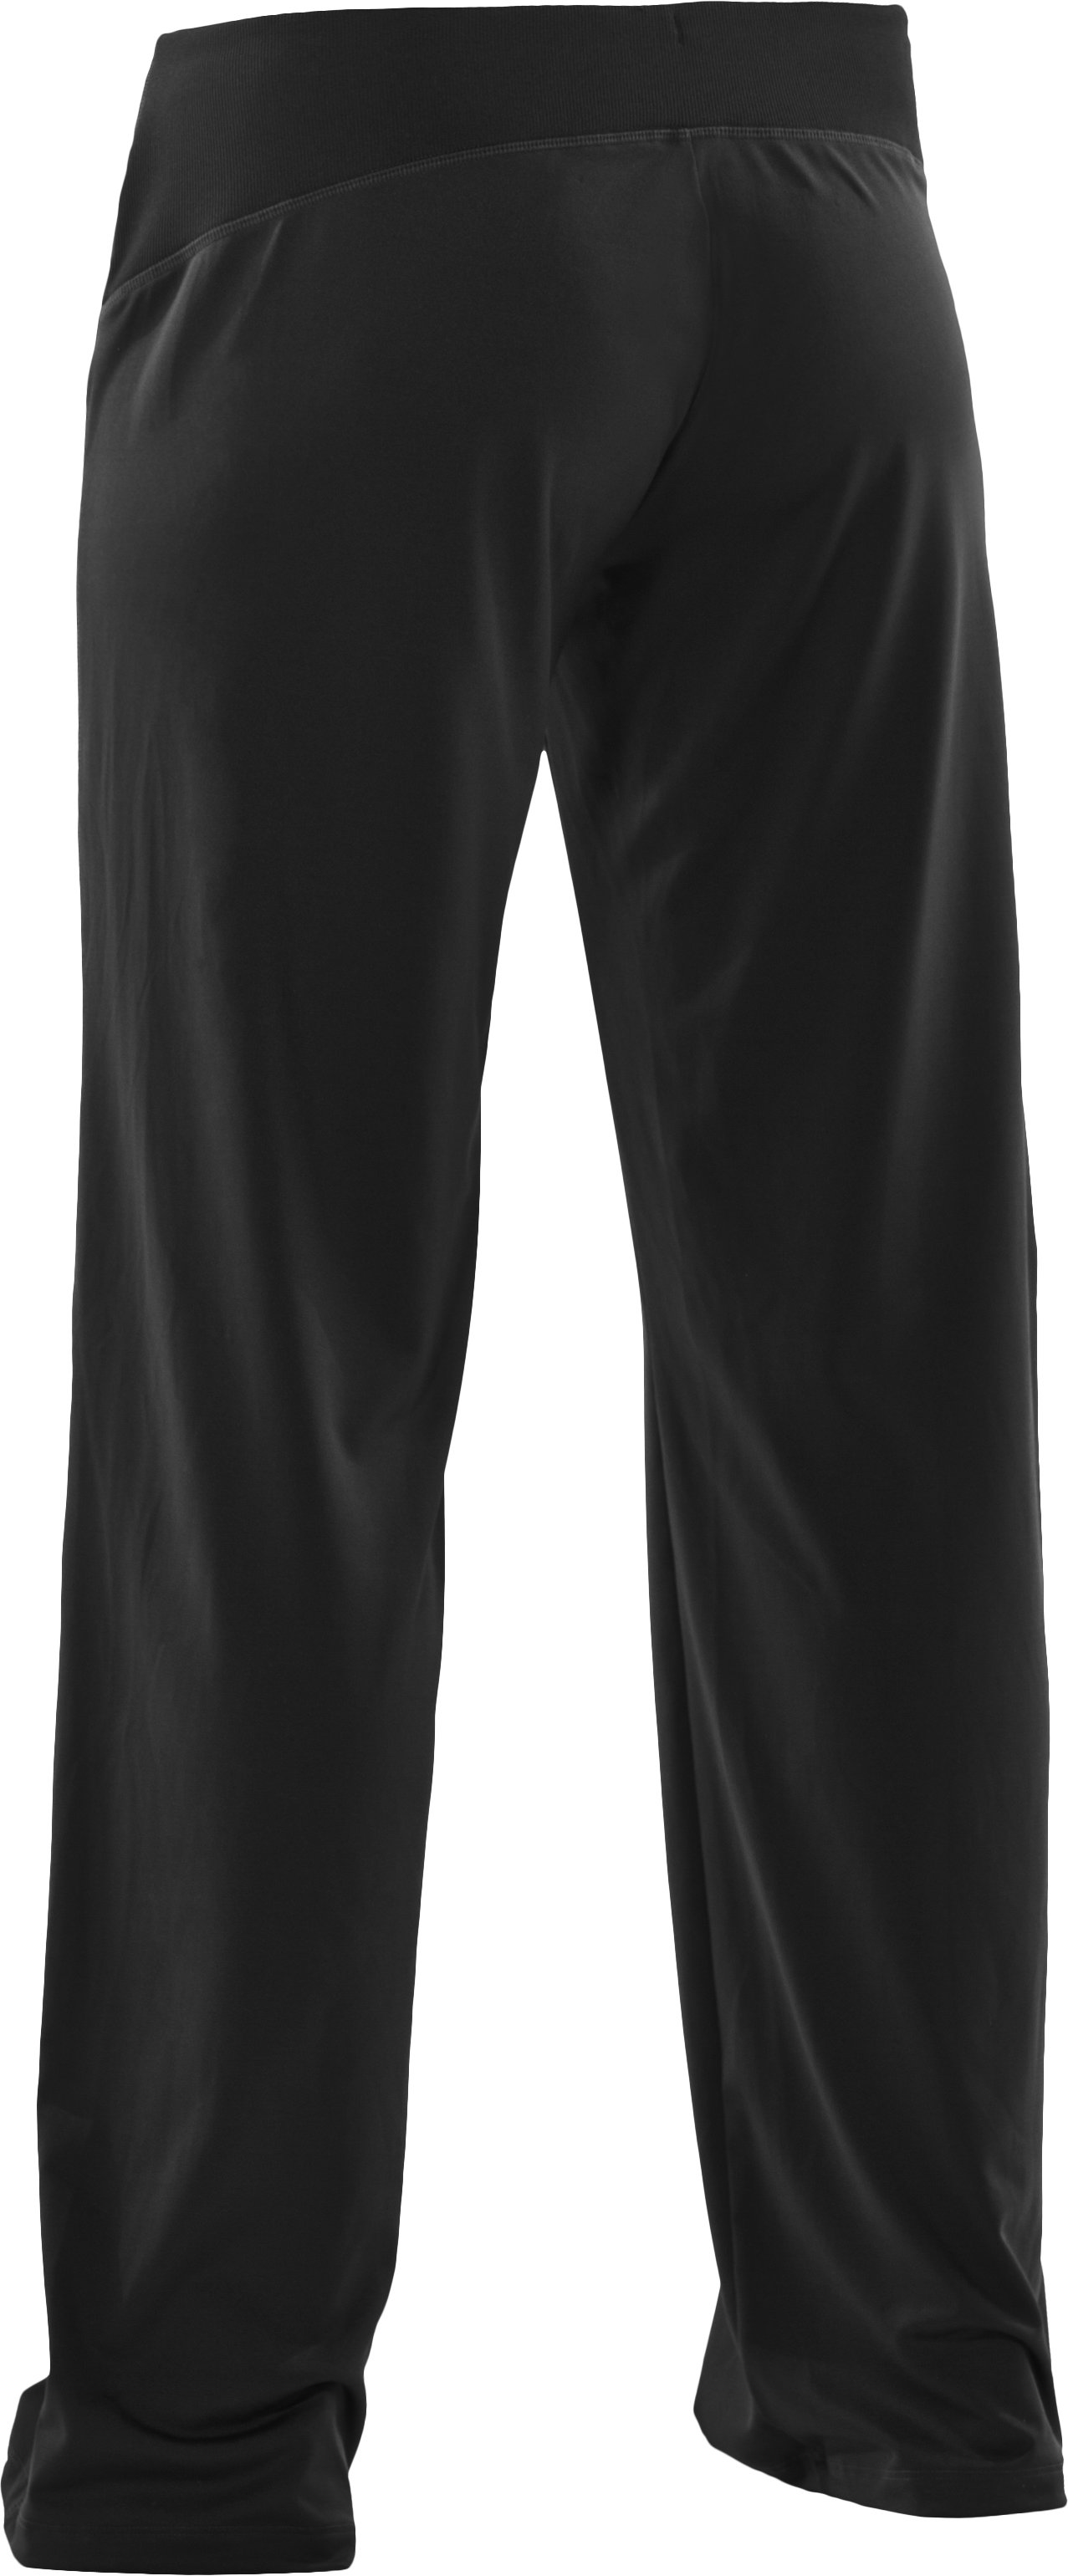 "Women's 34"" Form Semi-Fitted Pants - Tall, Black"